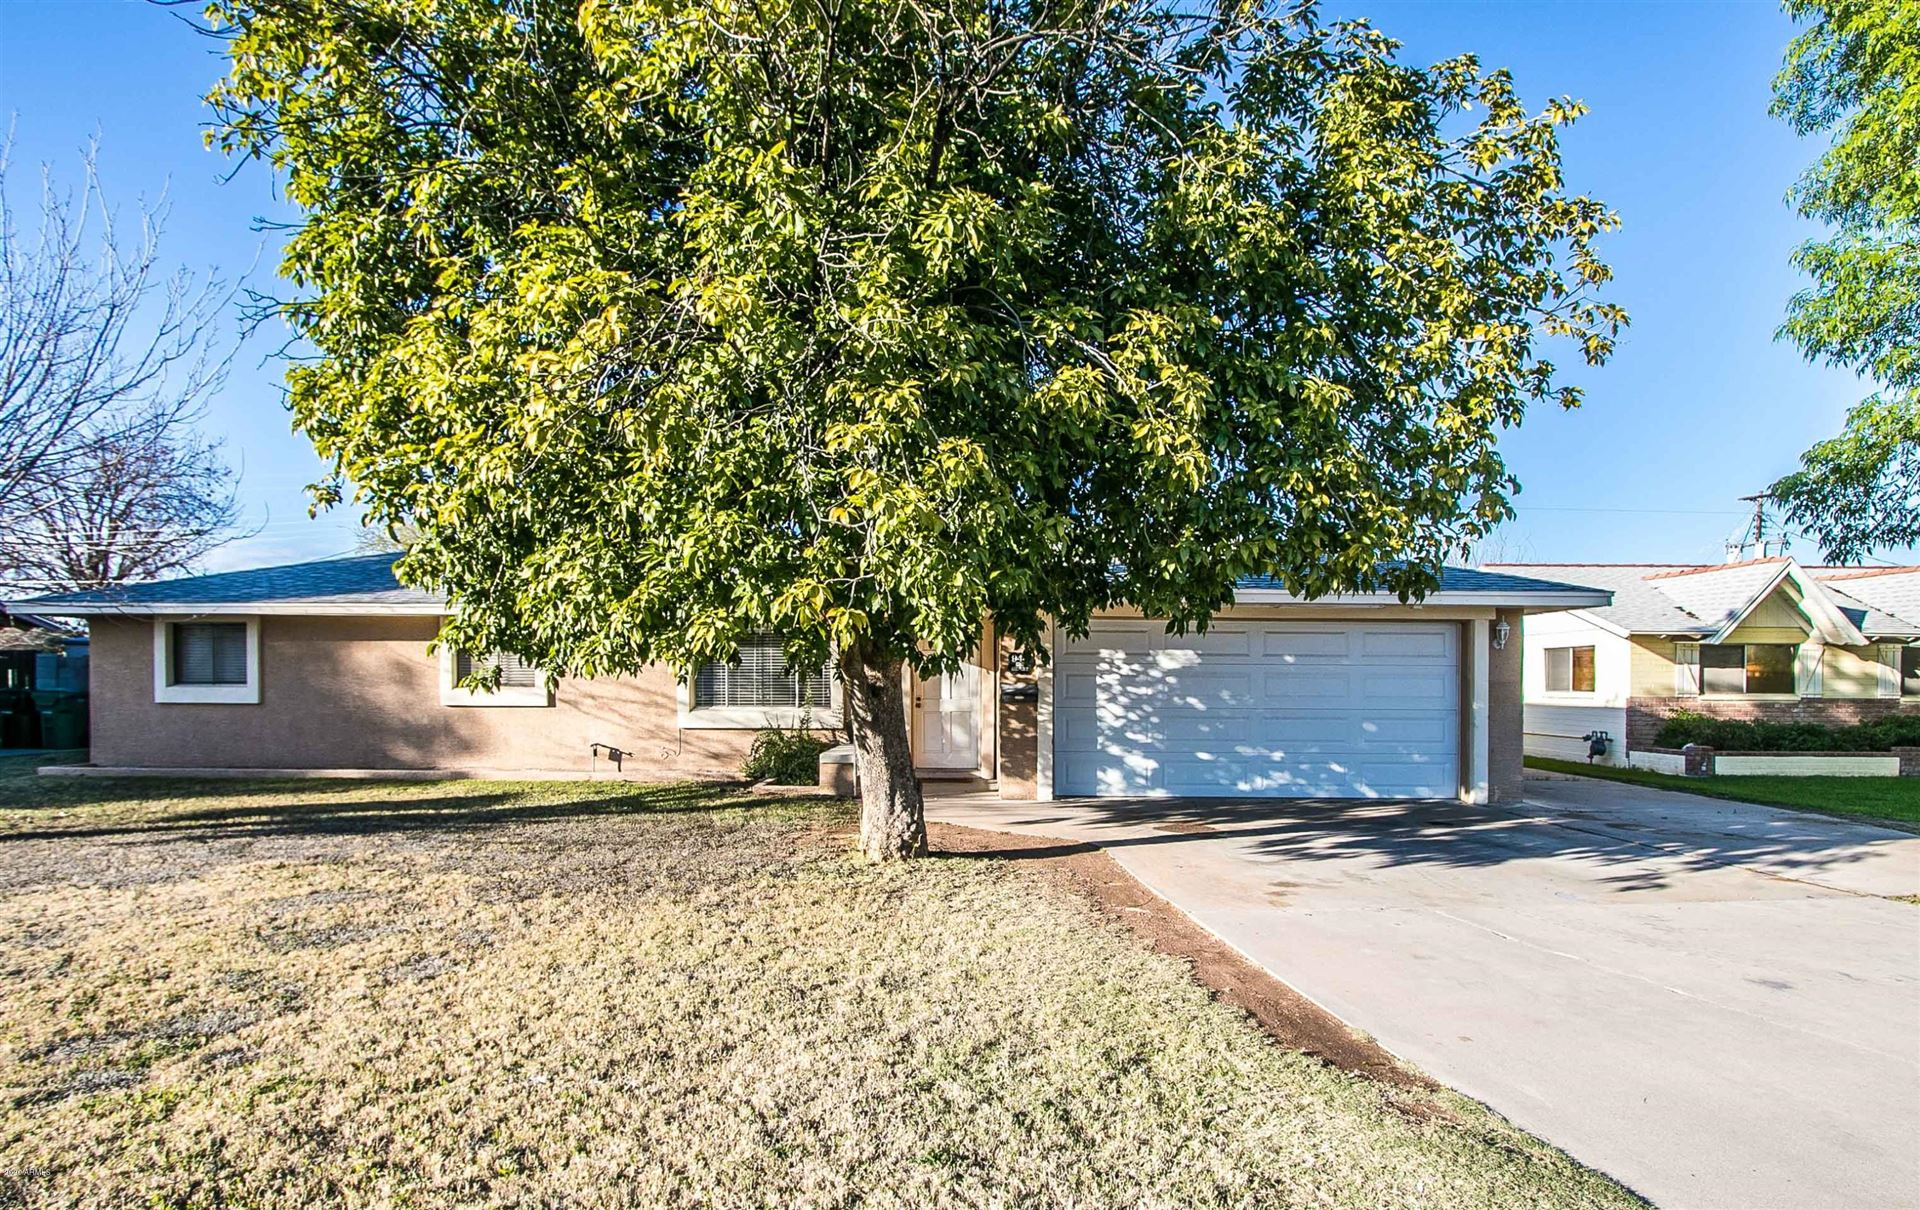 944 E 8TH Place, Mesa, AZ 85203 - #: 6036015